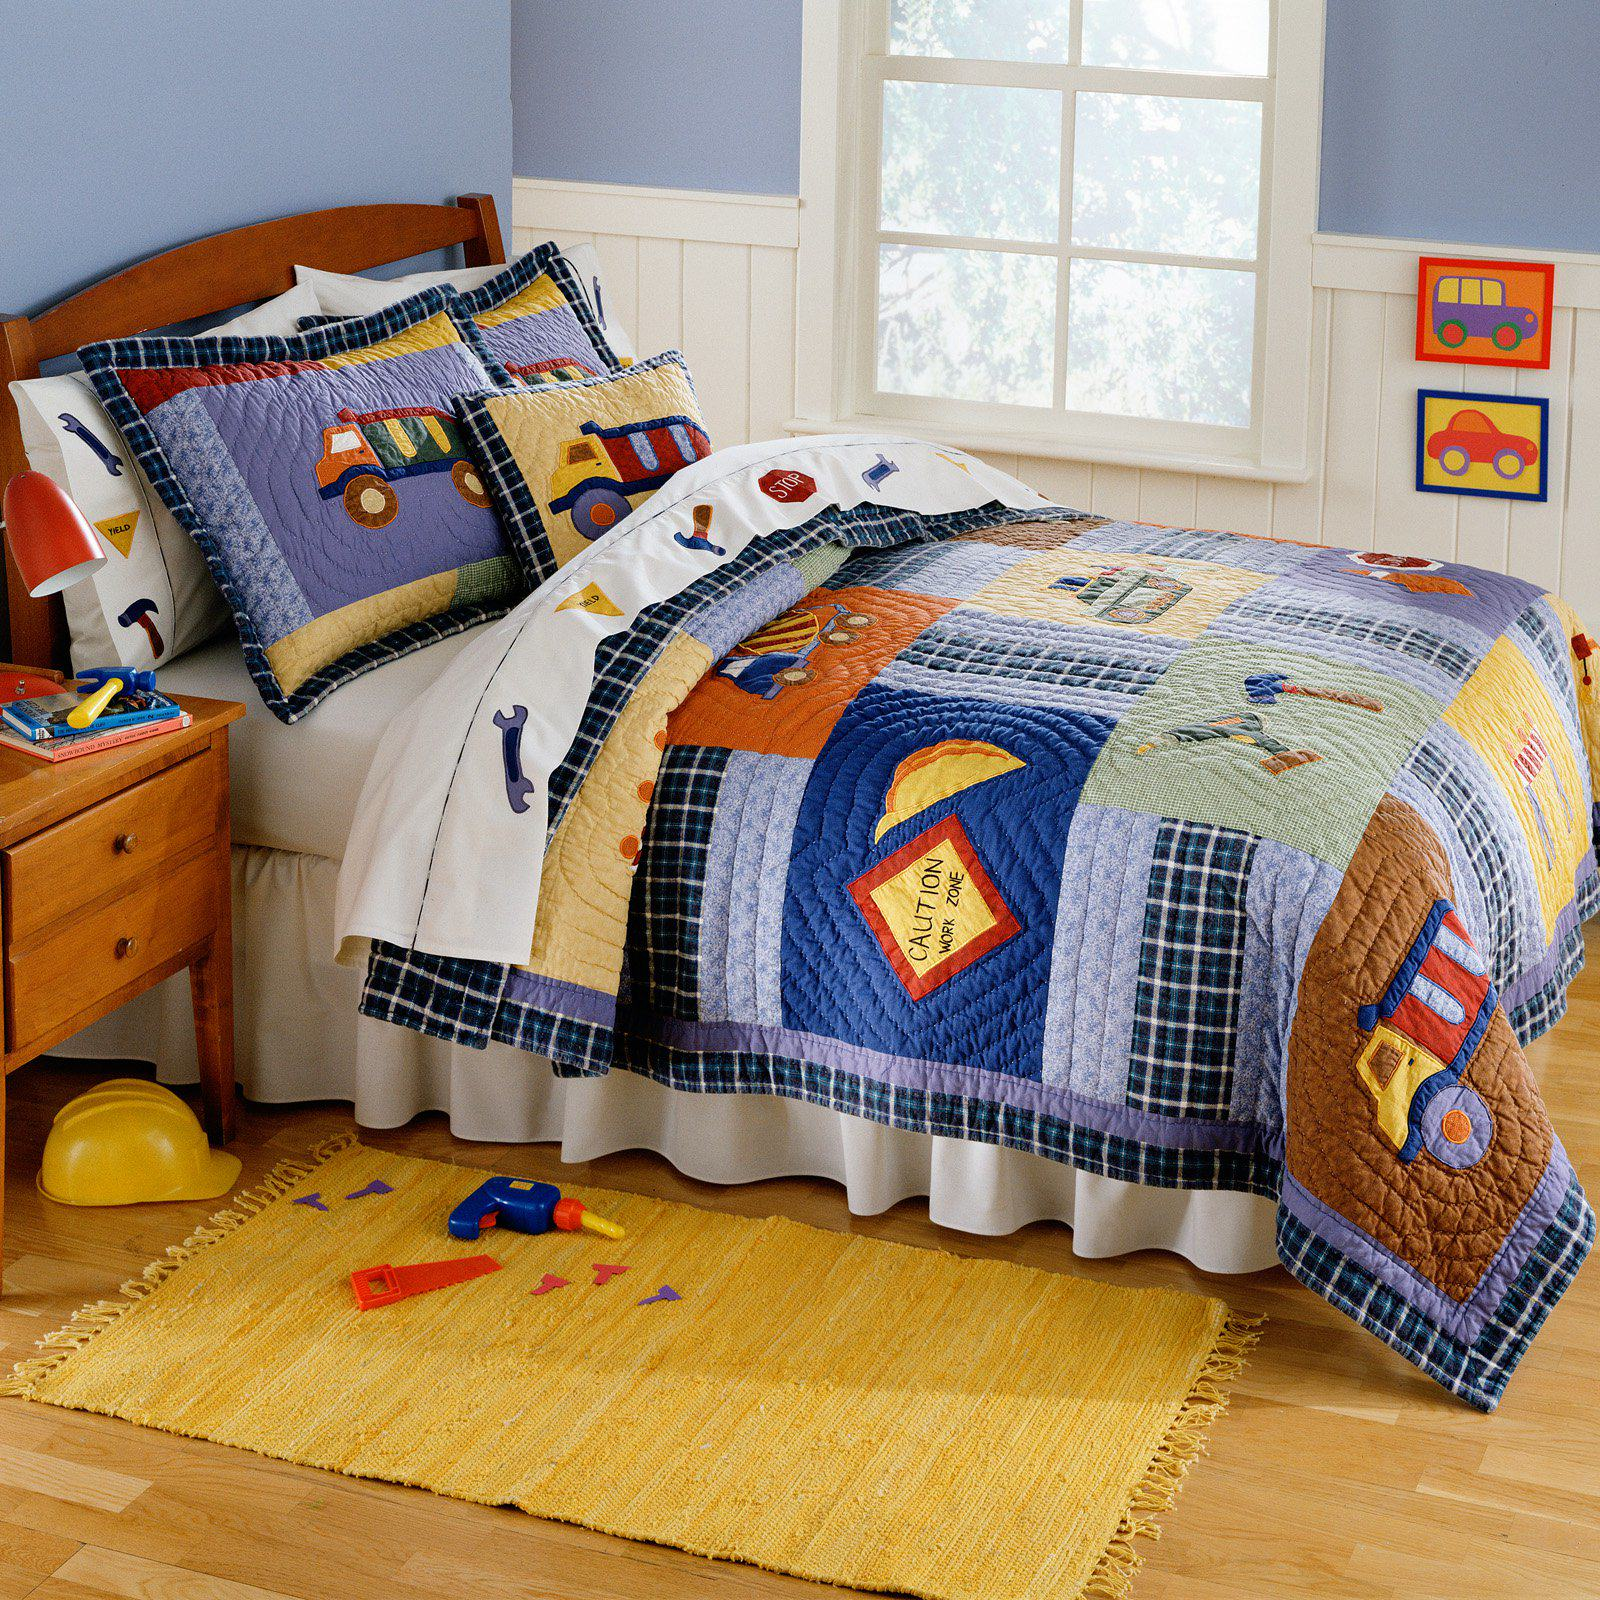 Boys Bedroom Makeover: Boys Bedroom Ideas